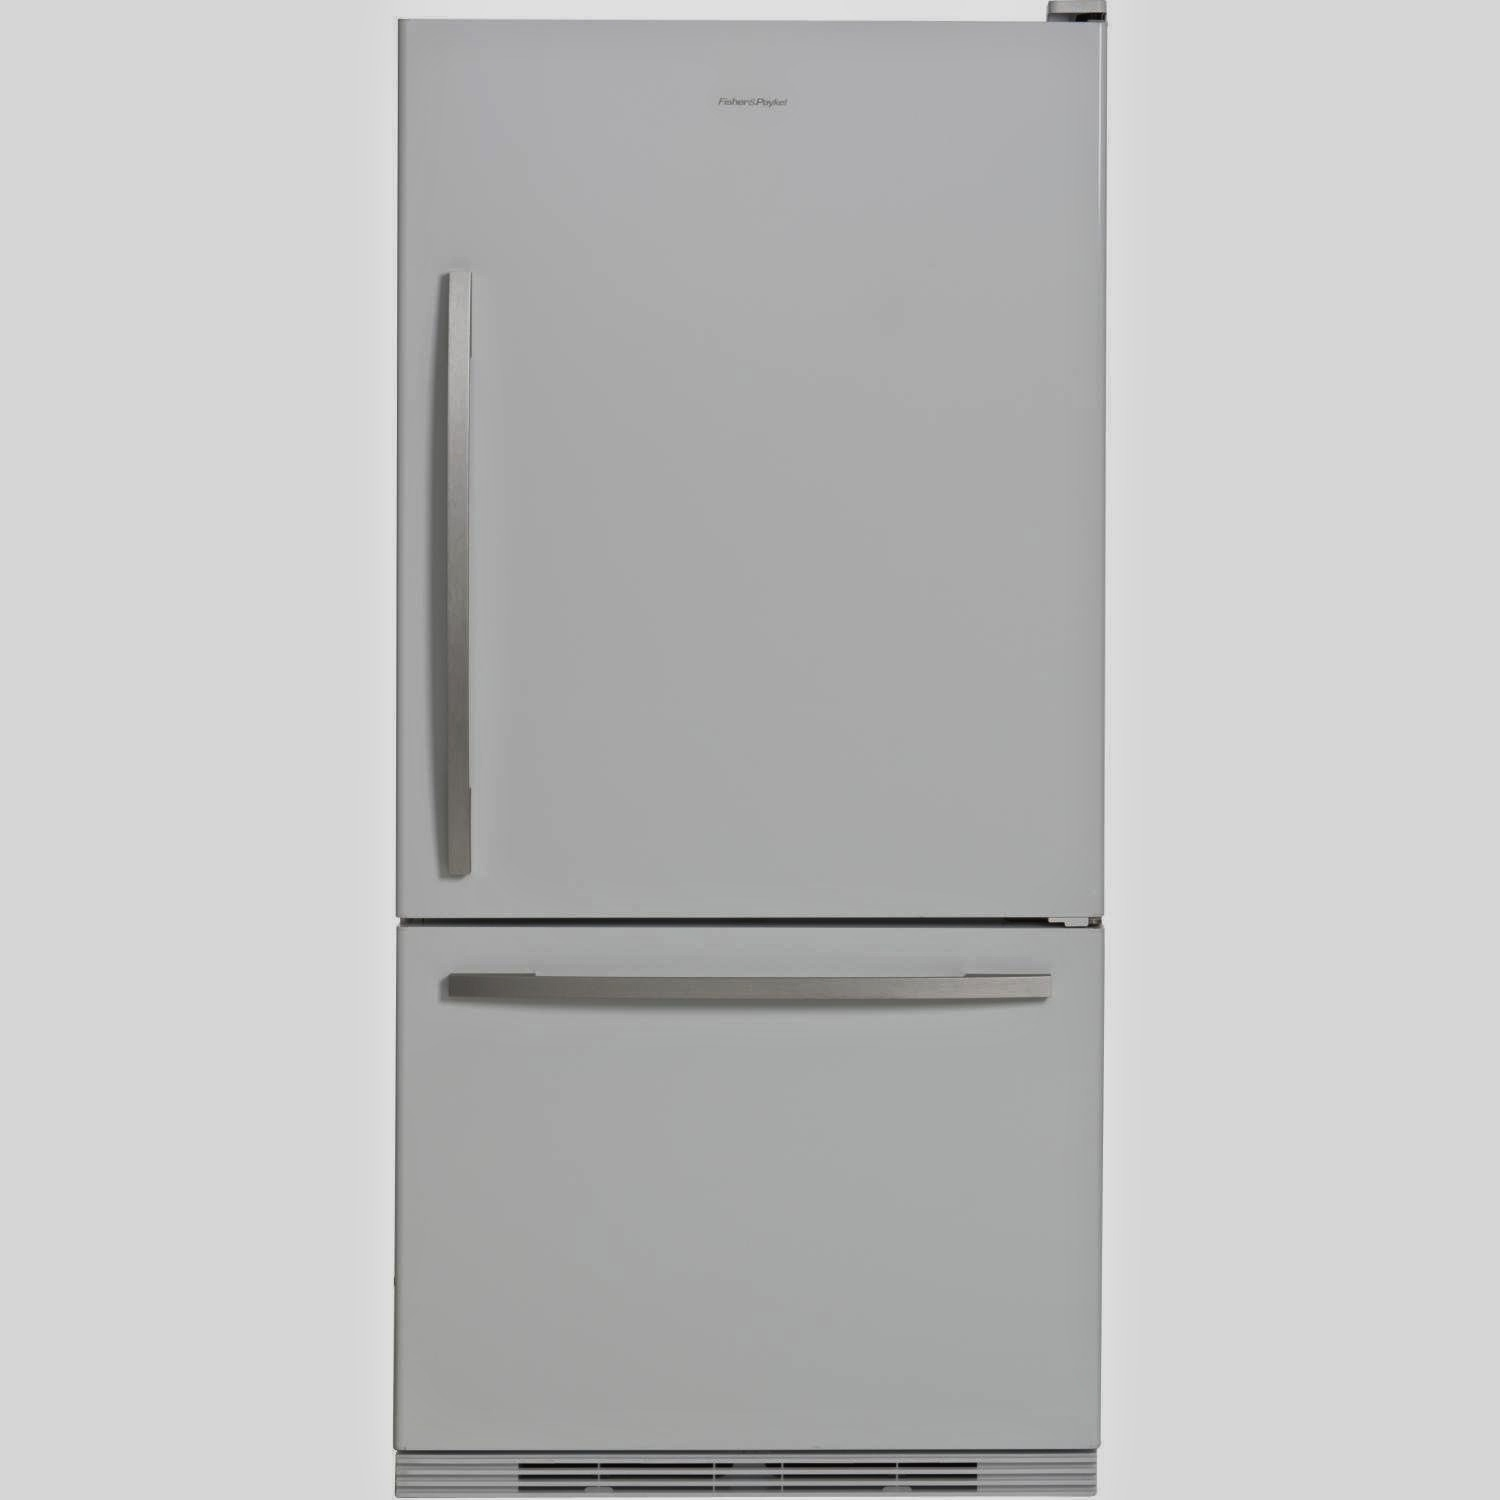 best refrigerator reviews fisher paykel refrigerator reviews. Black Bedroom Furniture Sets. Home Design Ideas